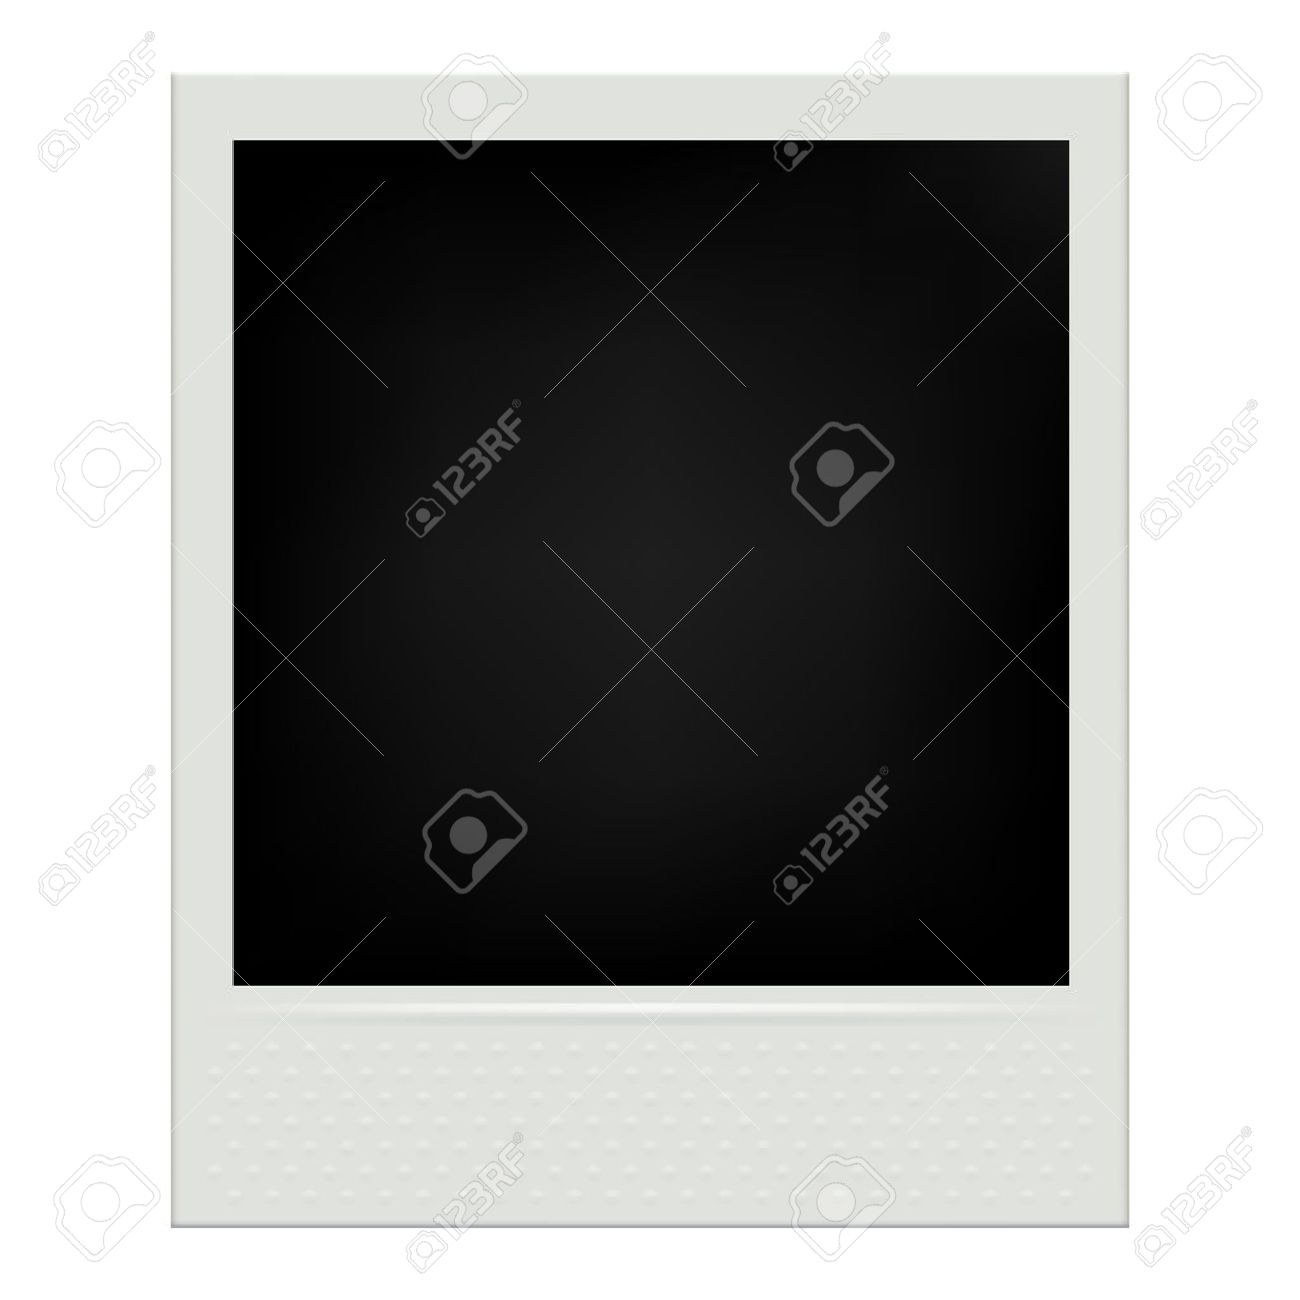 Instant Film Realistic Polaroid Frame Isolated Vector Illustration ...